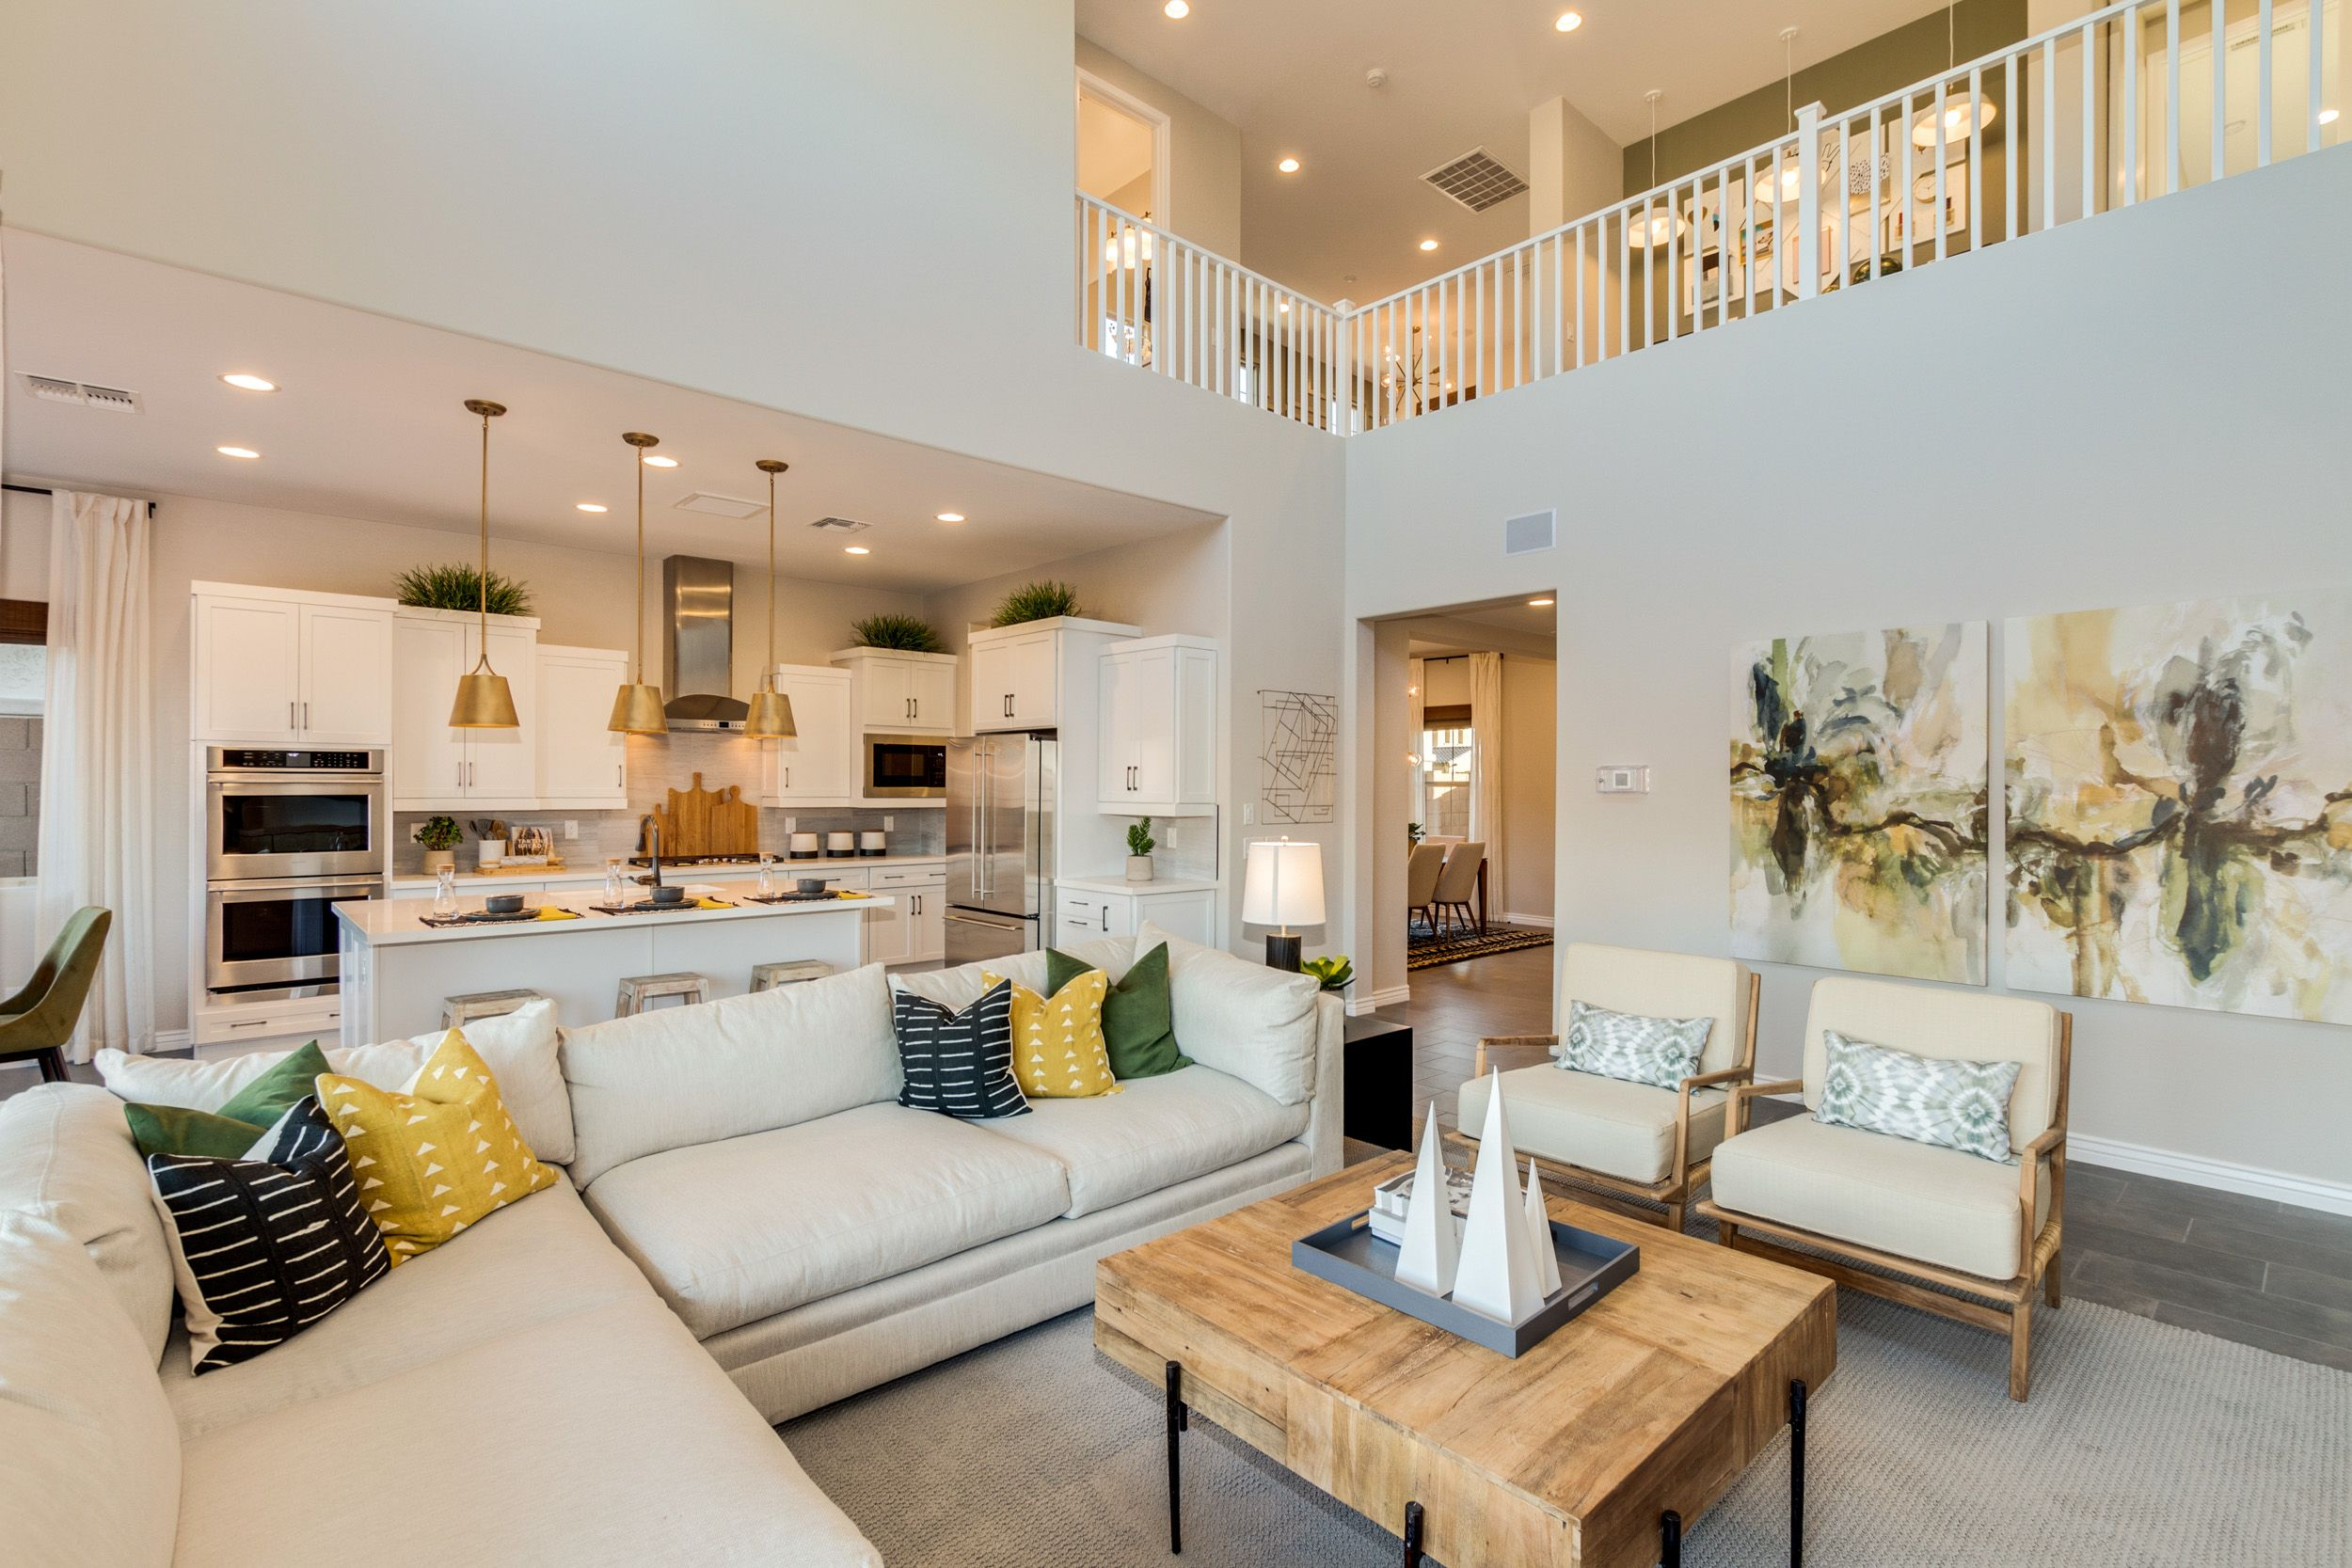 Taylor Morrison Homes At Aloravita Revere Floor Plan Realestate